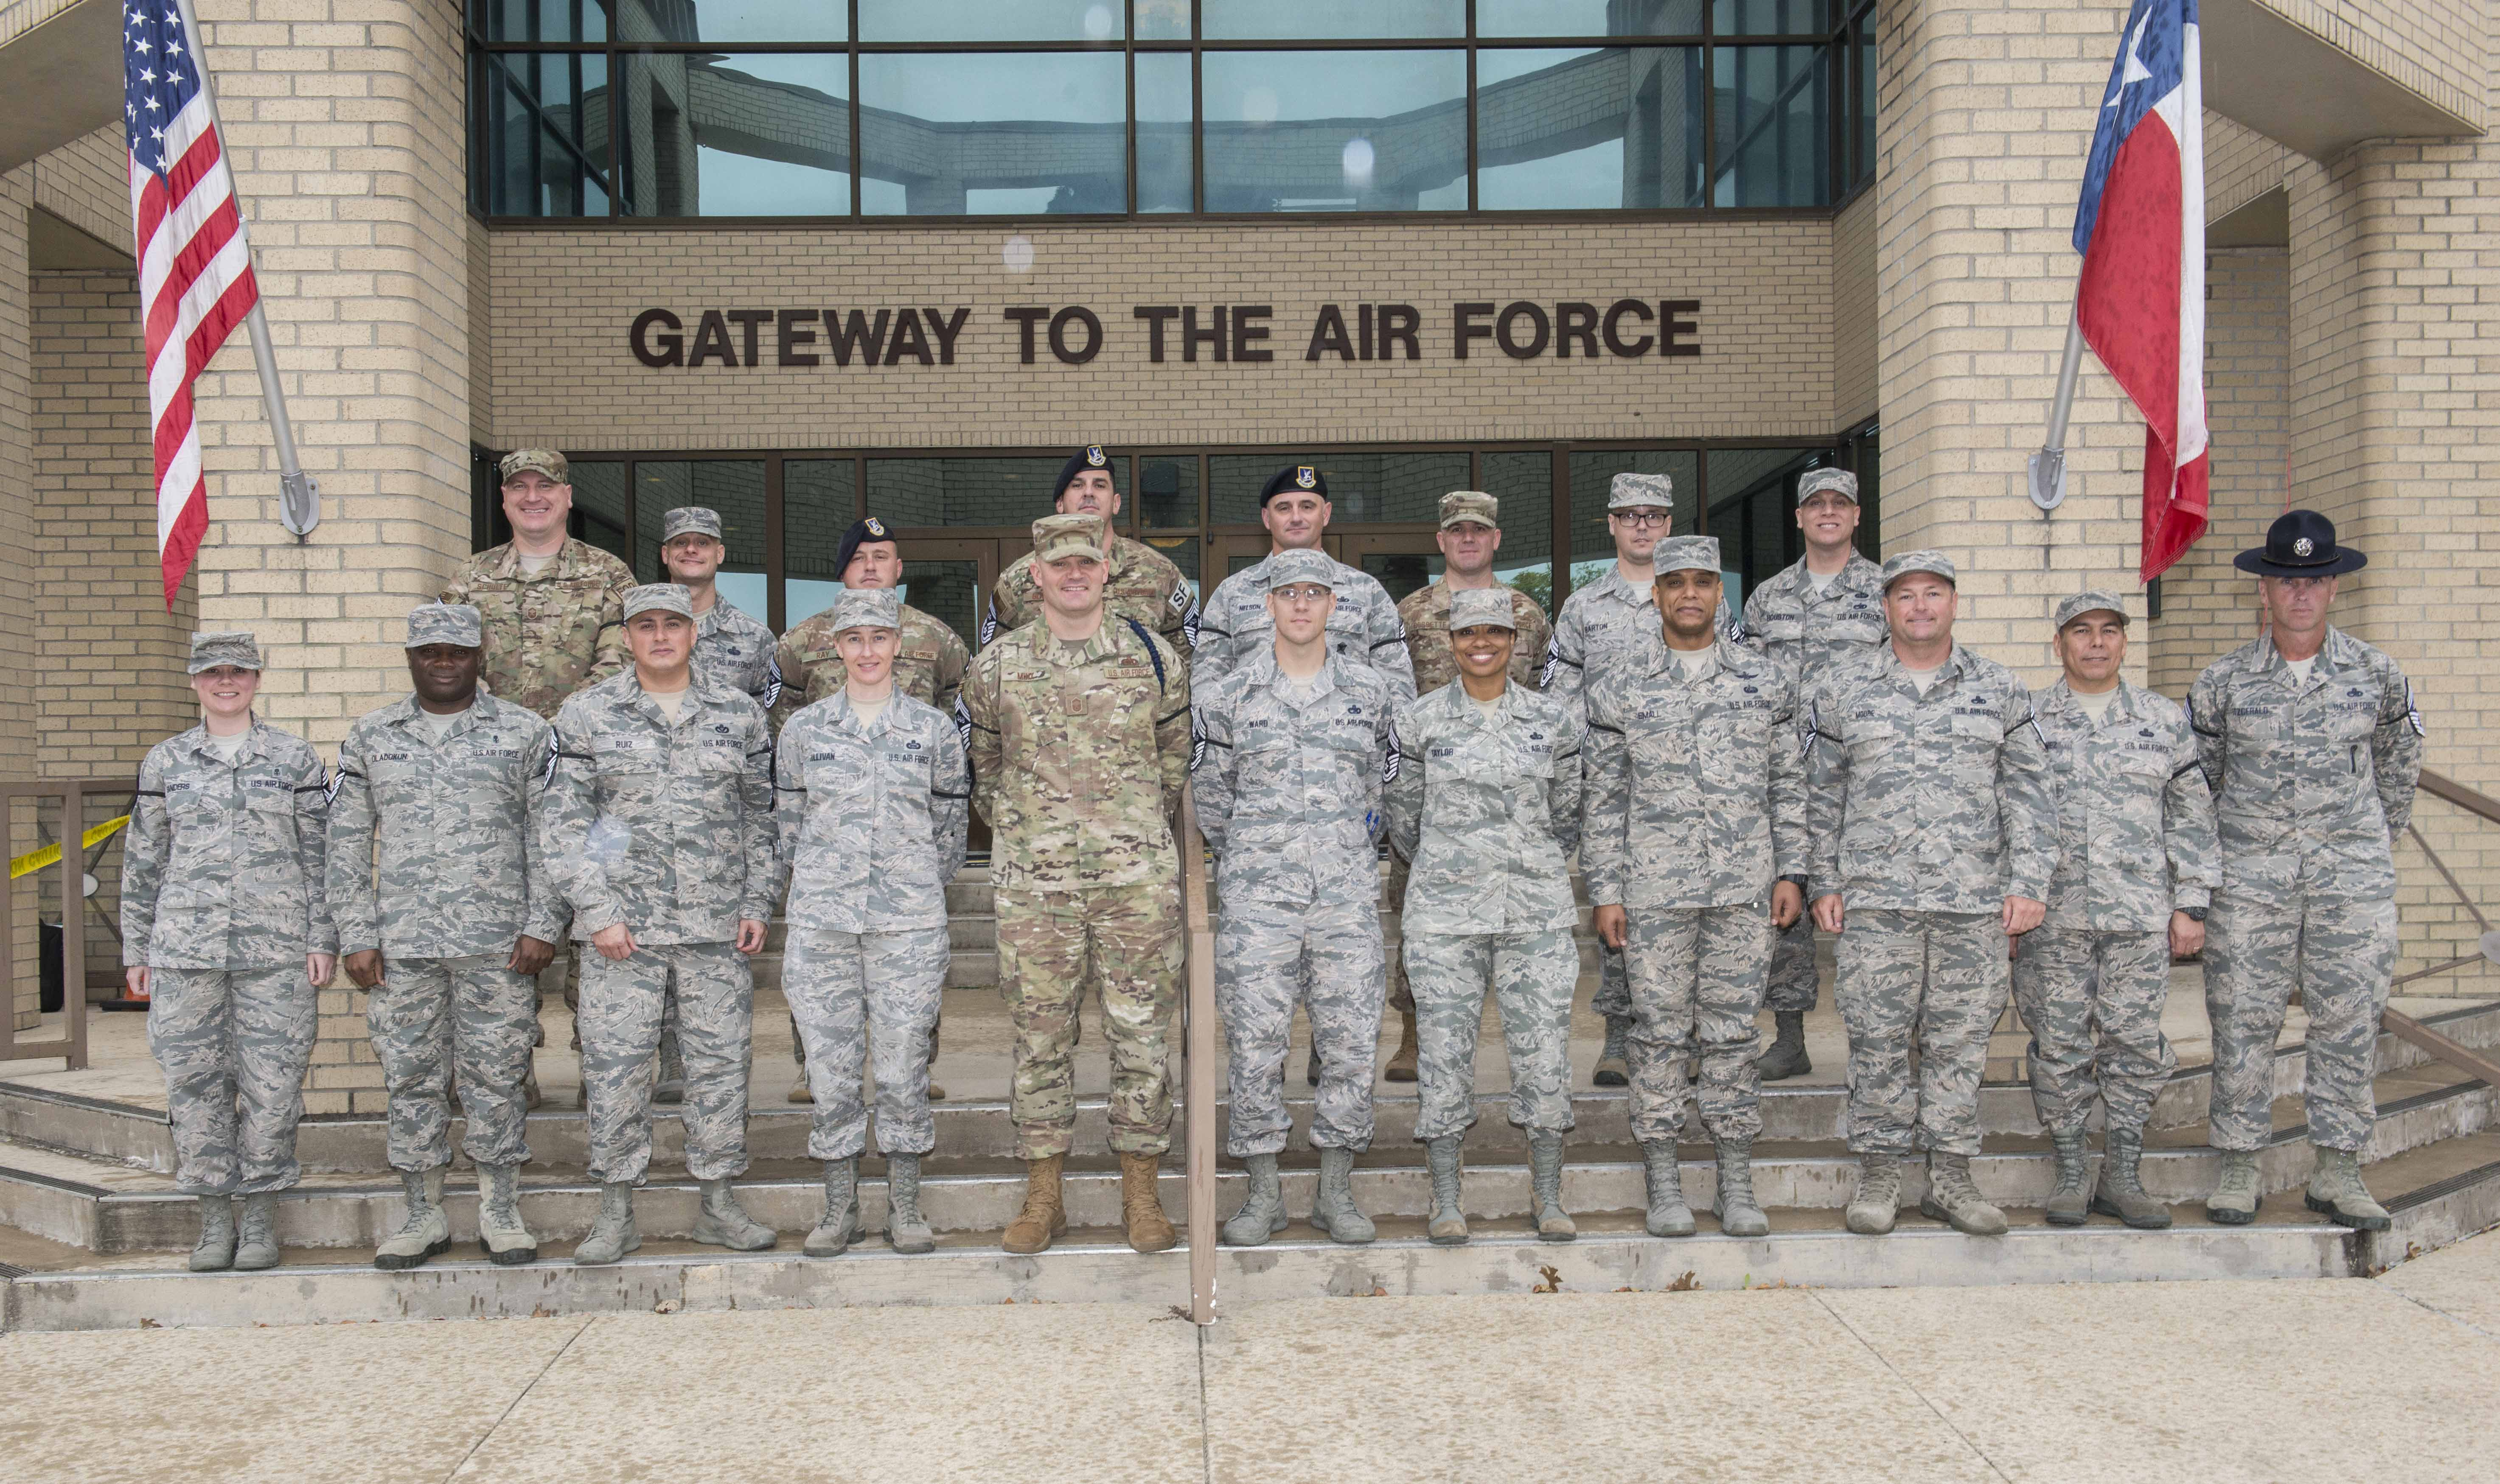 Air Force Promotion List 2020.Air Force Releases Chief Master Sergeant 18e9 Promotion